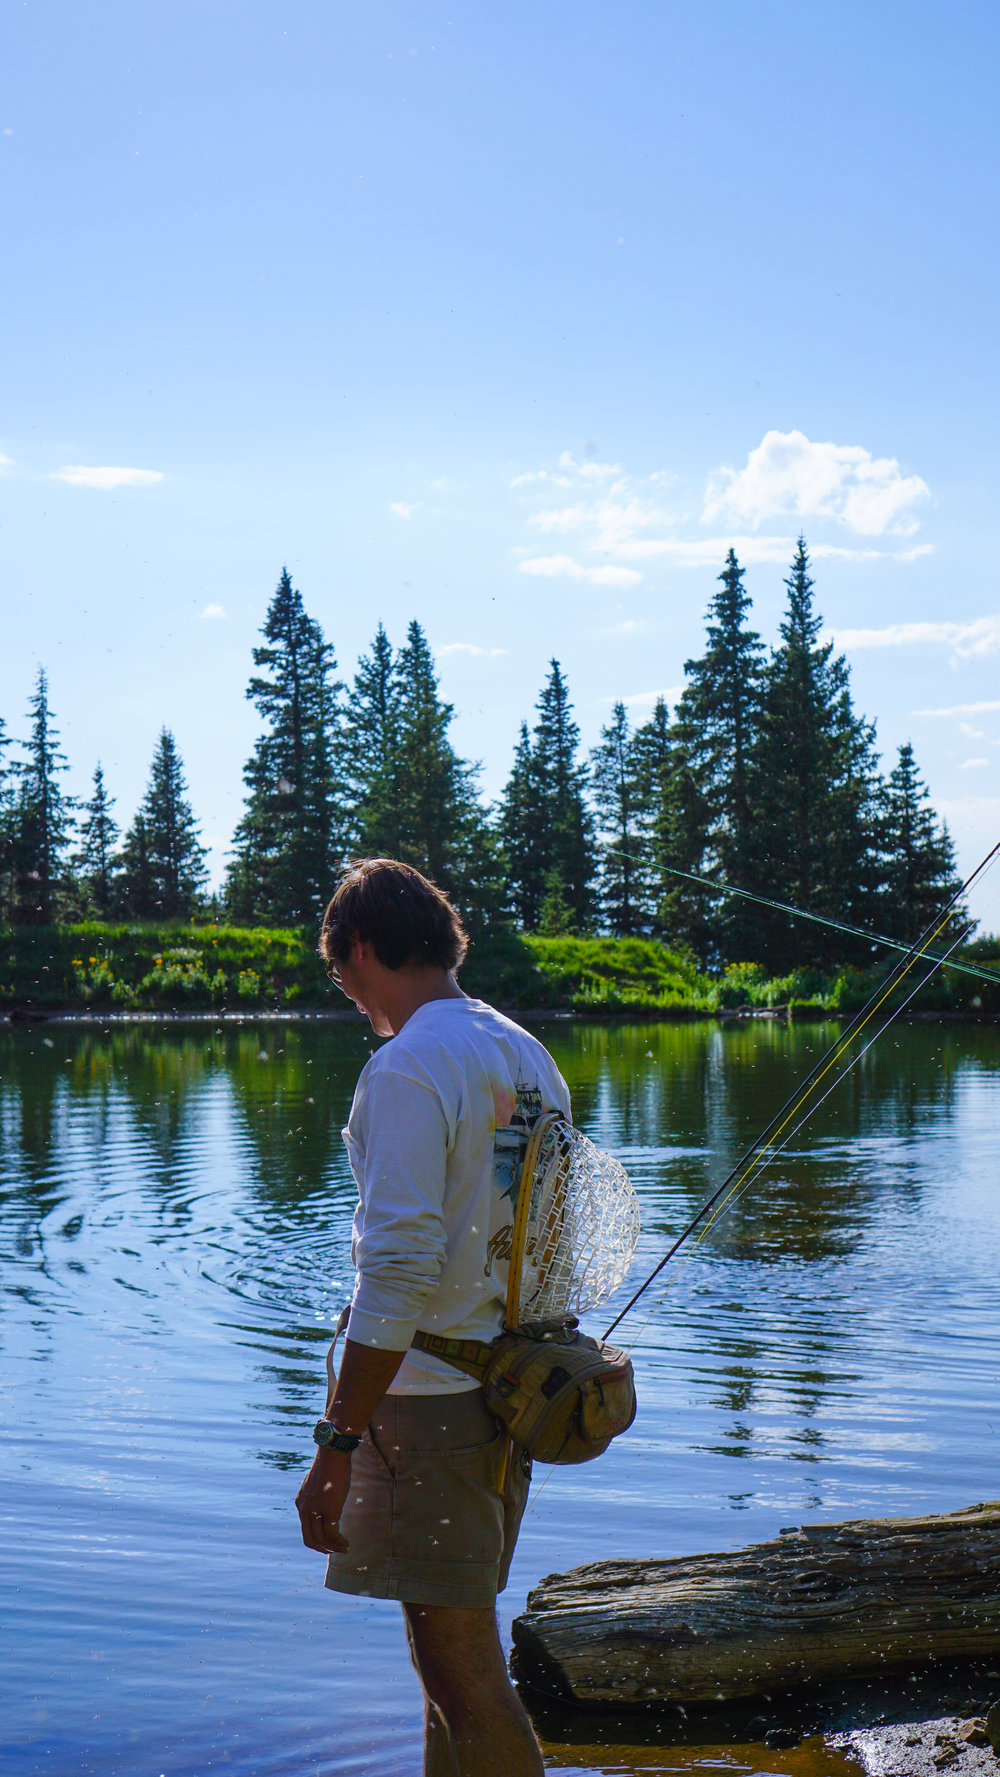 My brother had been working in Granby, CO as a fly fishing guide so he took a few days off to join us :)